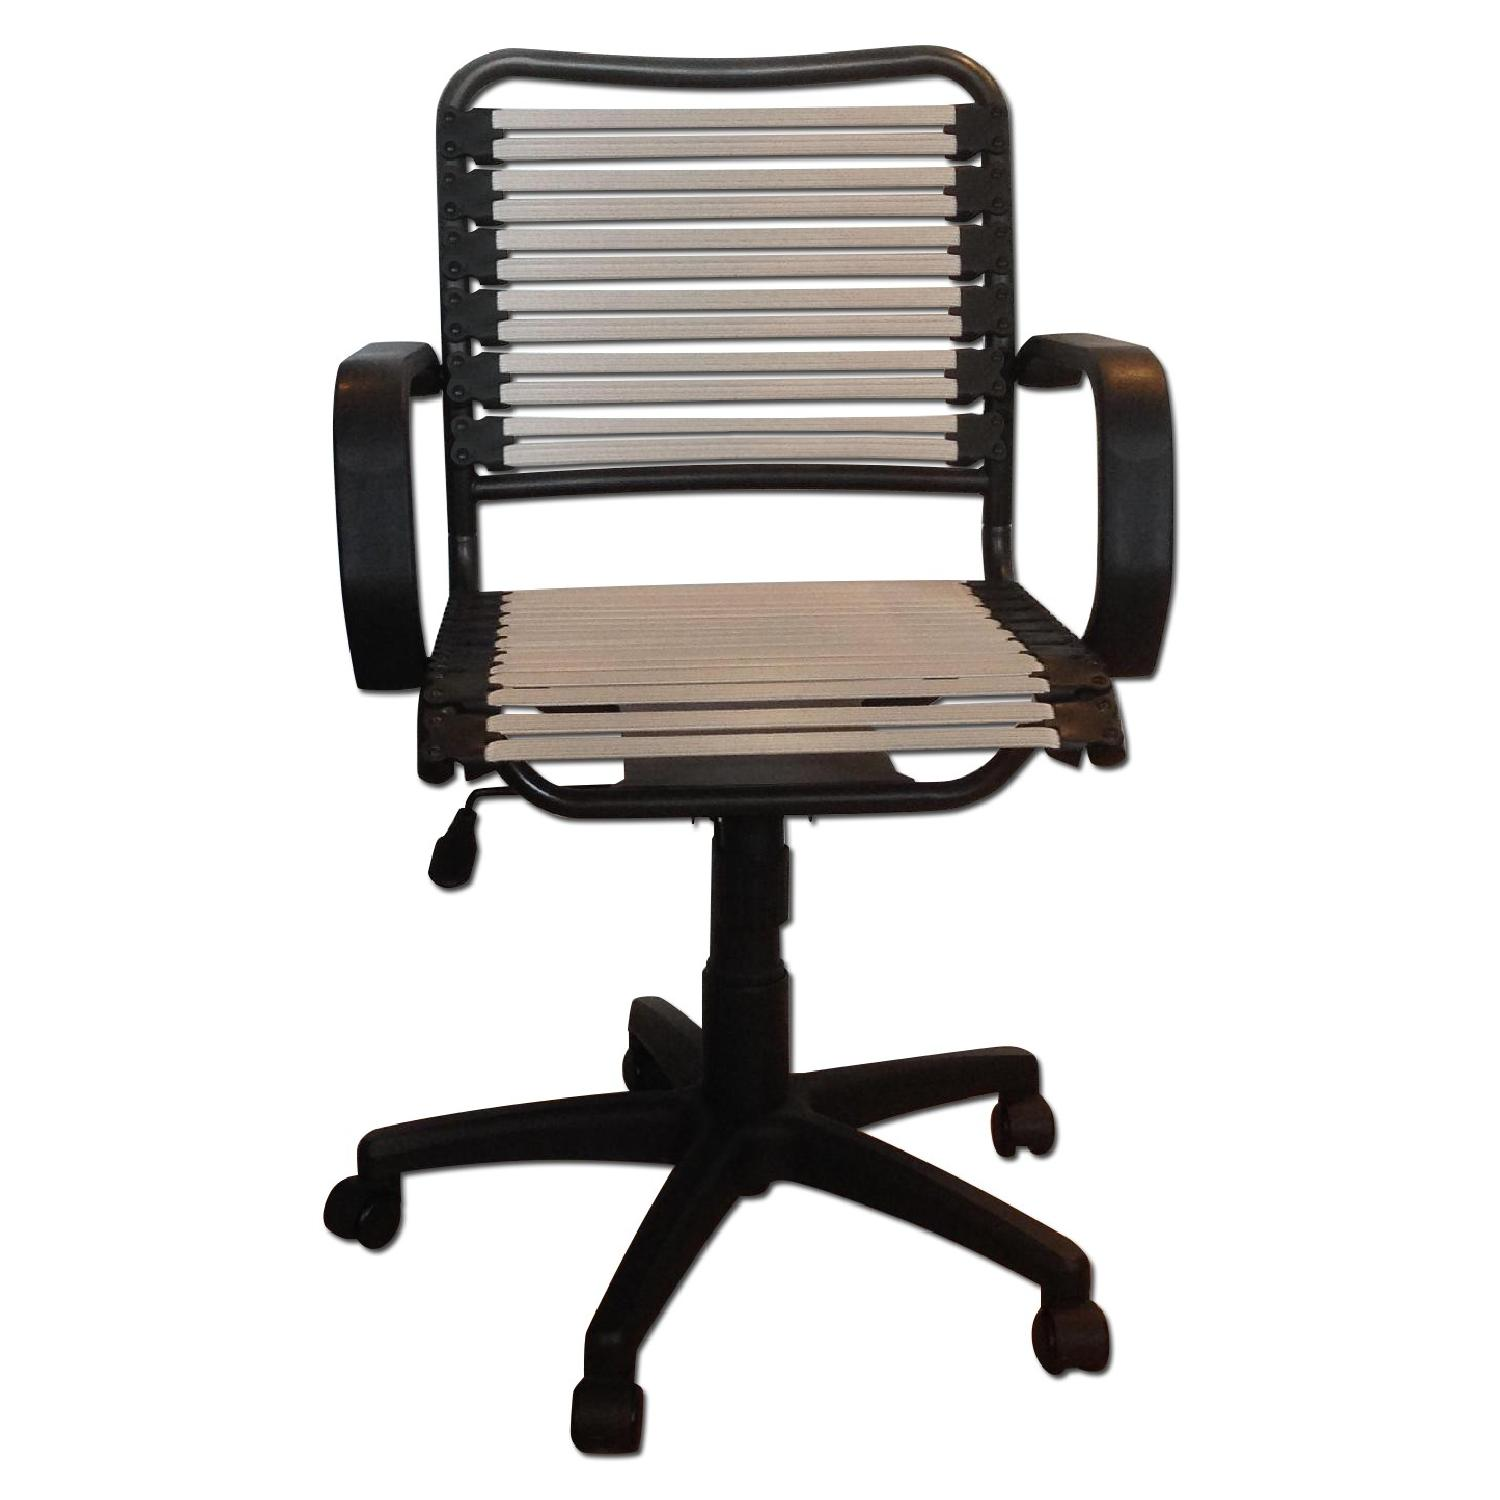 Container Store White Flat Bungee Office Chair w/ Arms - image-0